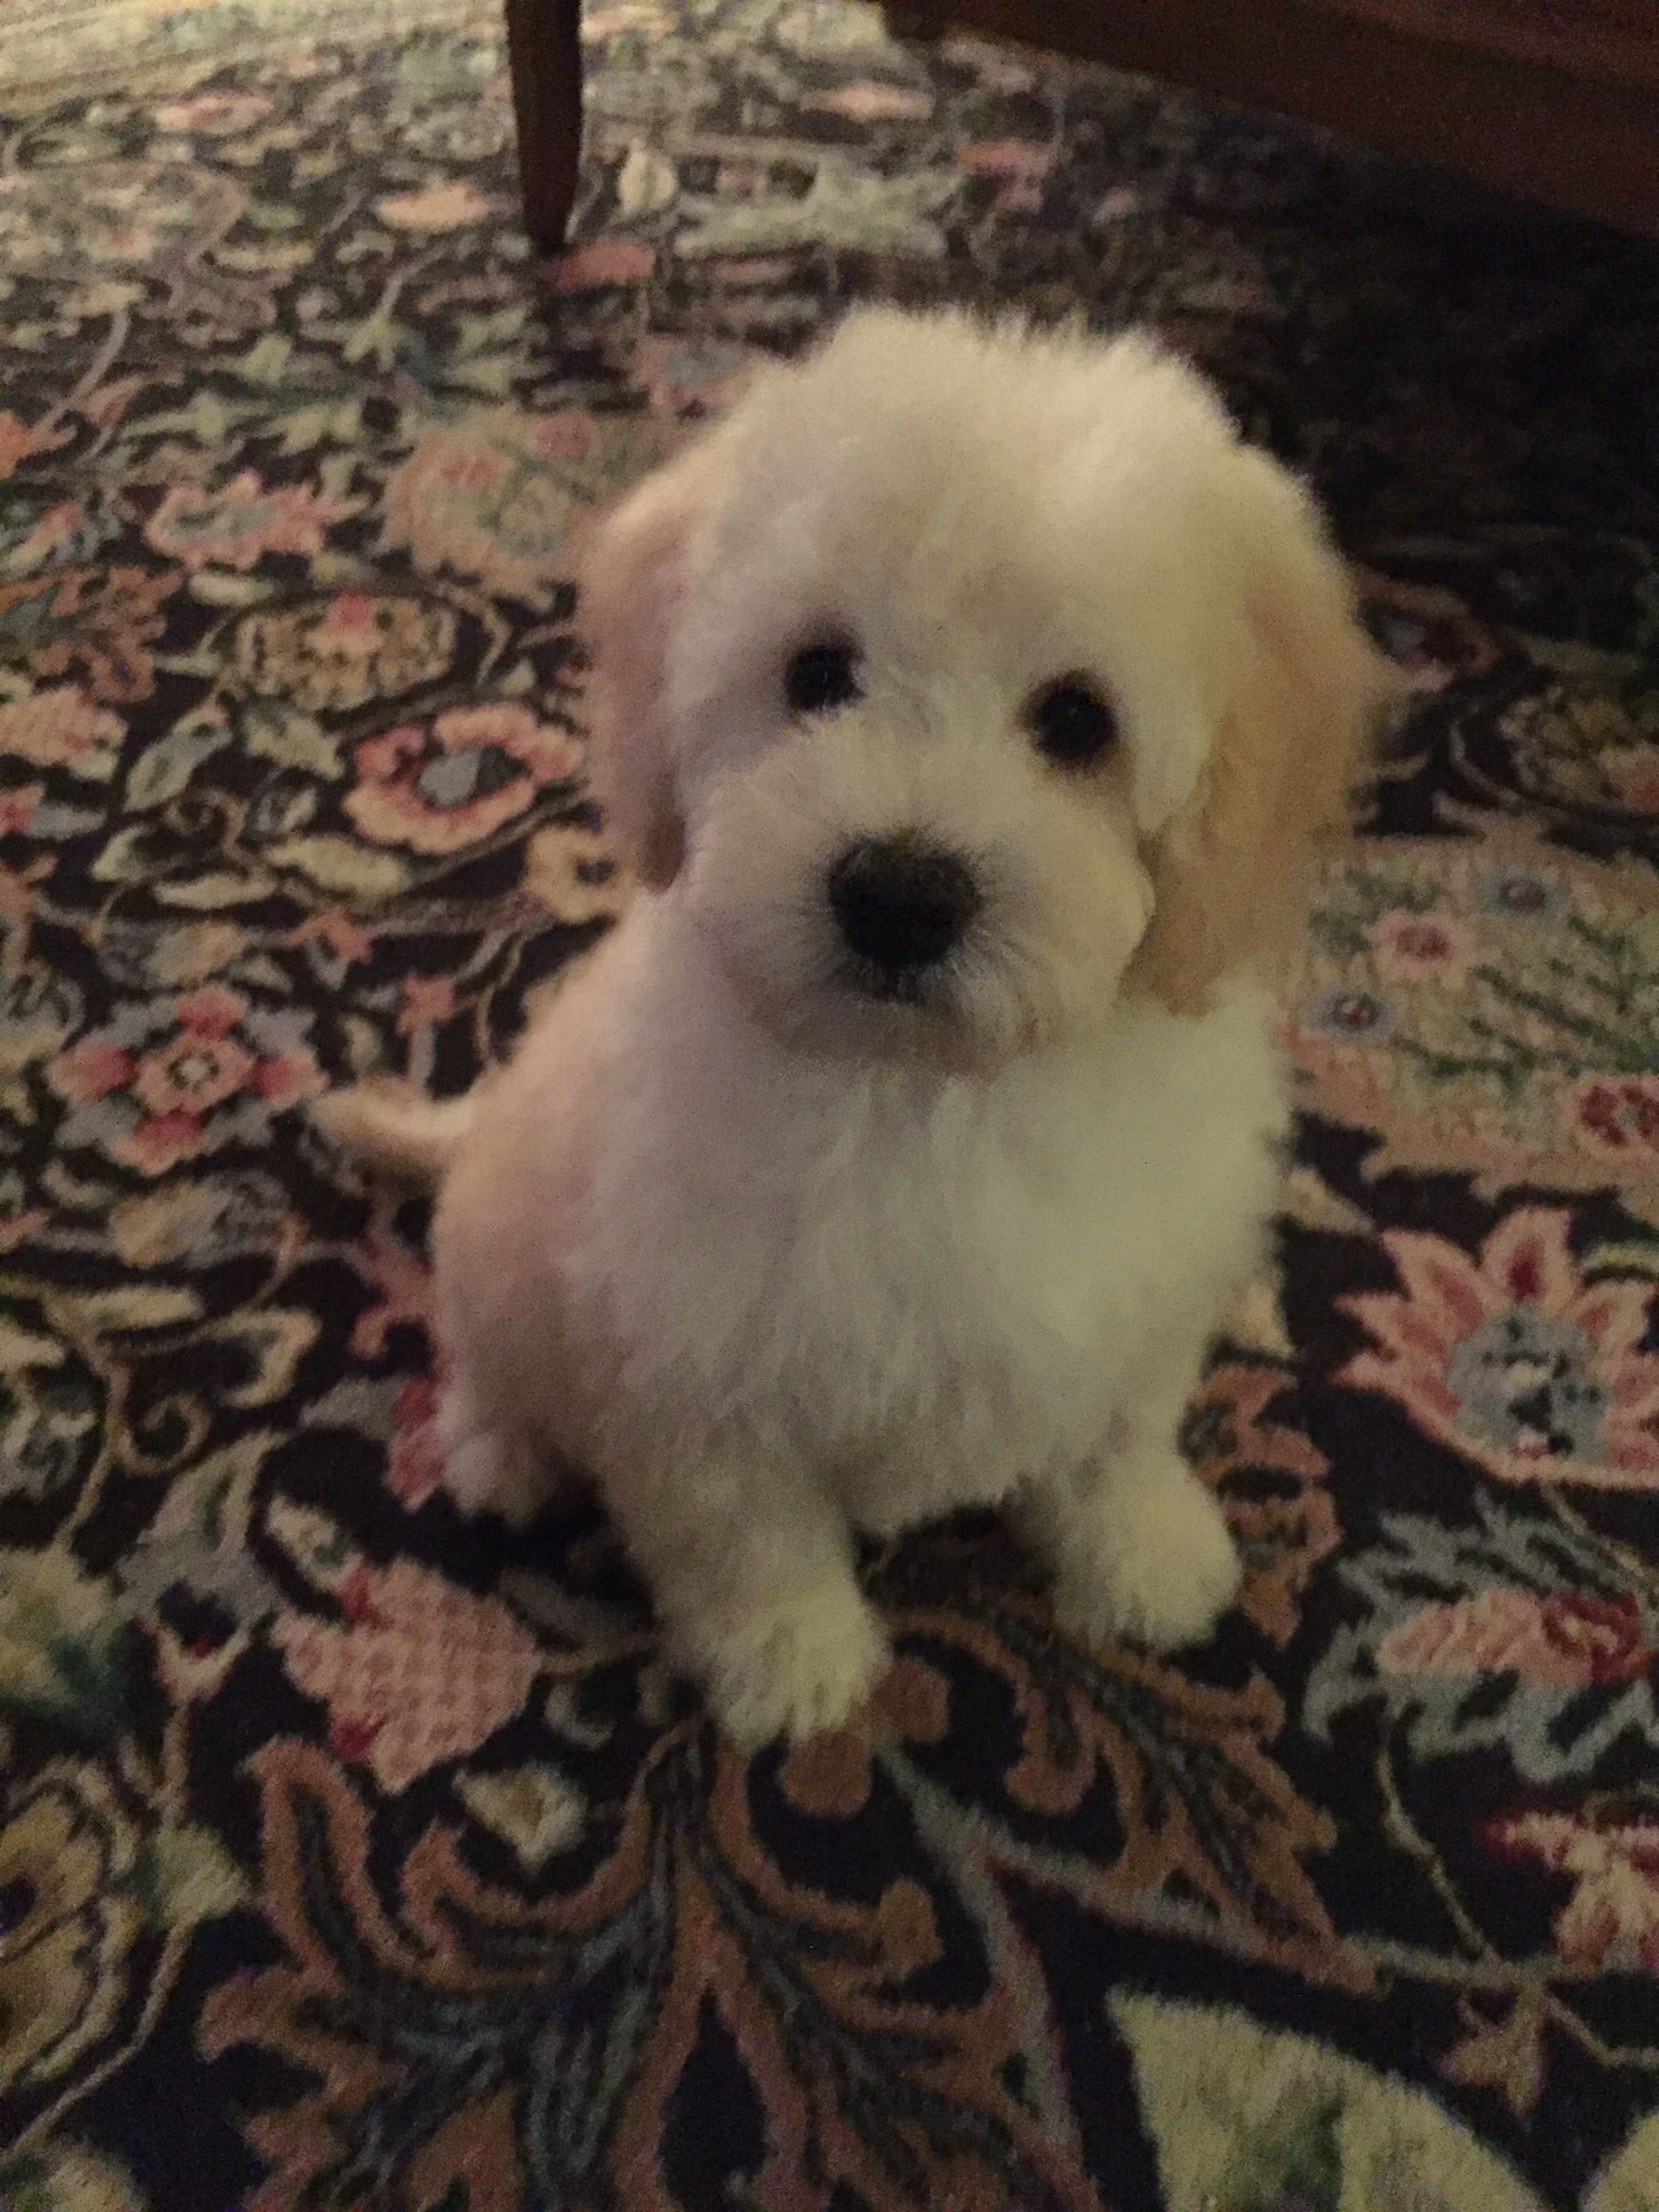 8 Week Old Australian Labradoodle Puppy From Downunder Labradoodles Usa Www Labradoodle Biz Australian Labradoodle Puppies Labradoodle Puppy Labradoodle